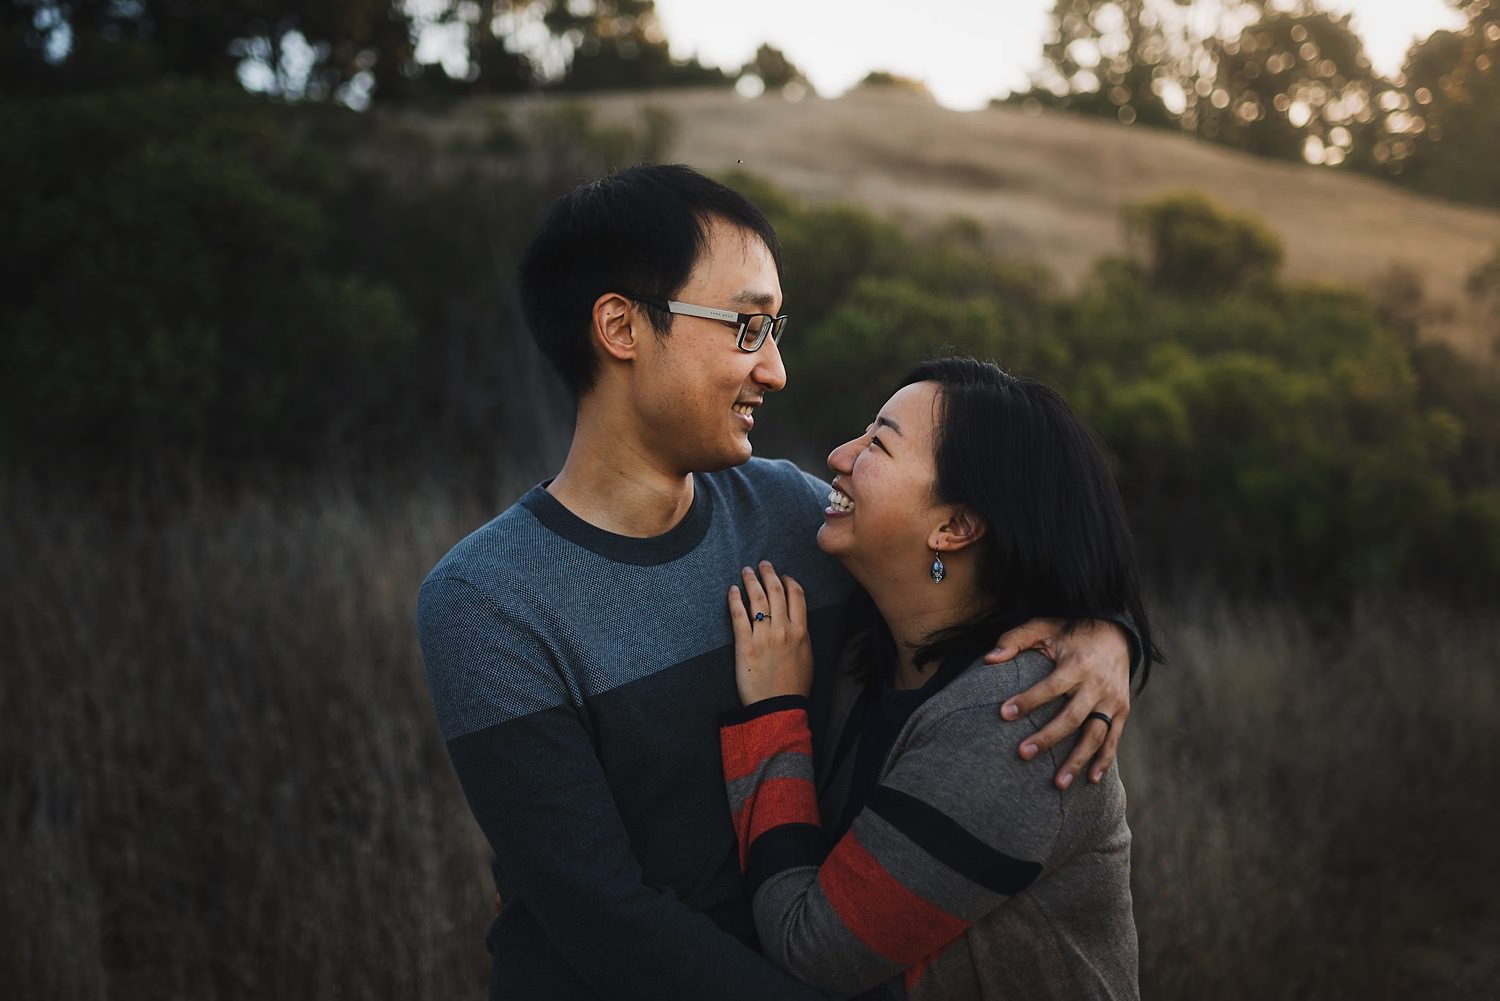 Tilden Regional Park Engagement Session // Emmeline + Jeff - Photo by Trung Hoang Photography | www.trunghoangphotography.com | San Francisco Bay Area Wedding Photographer